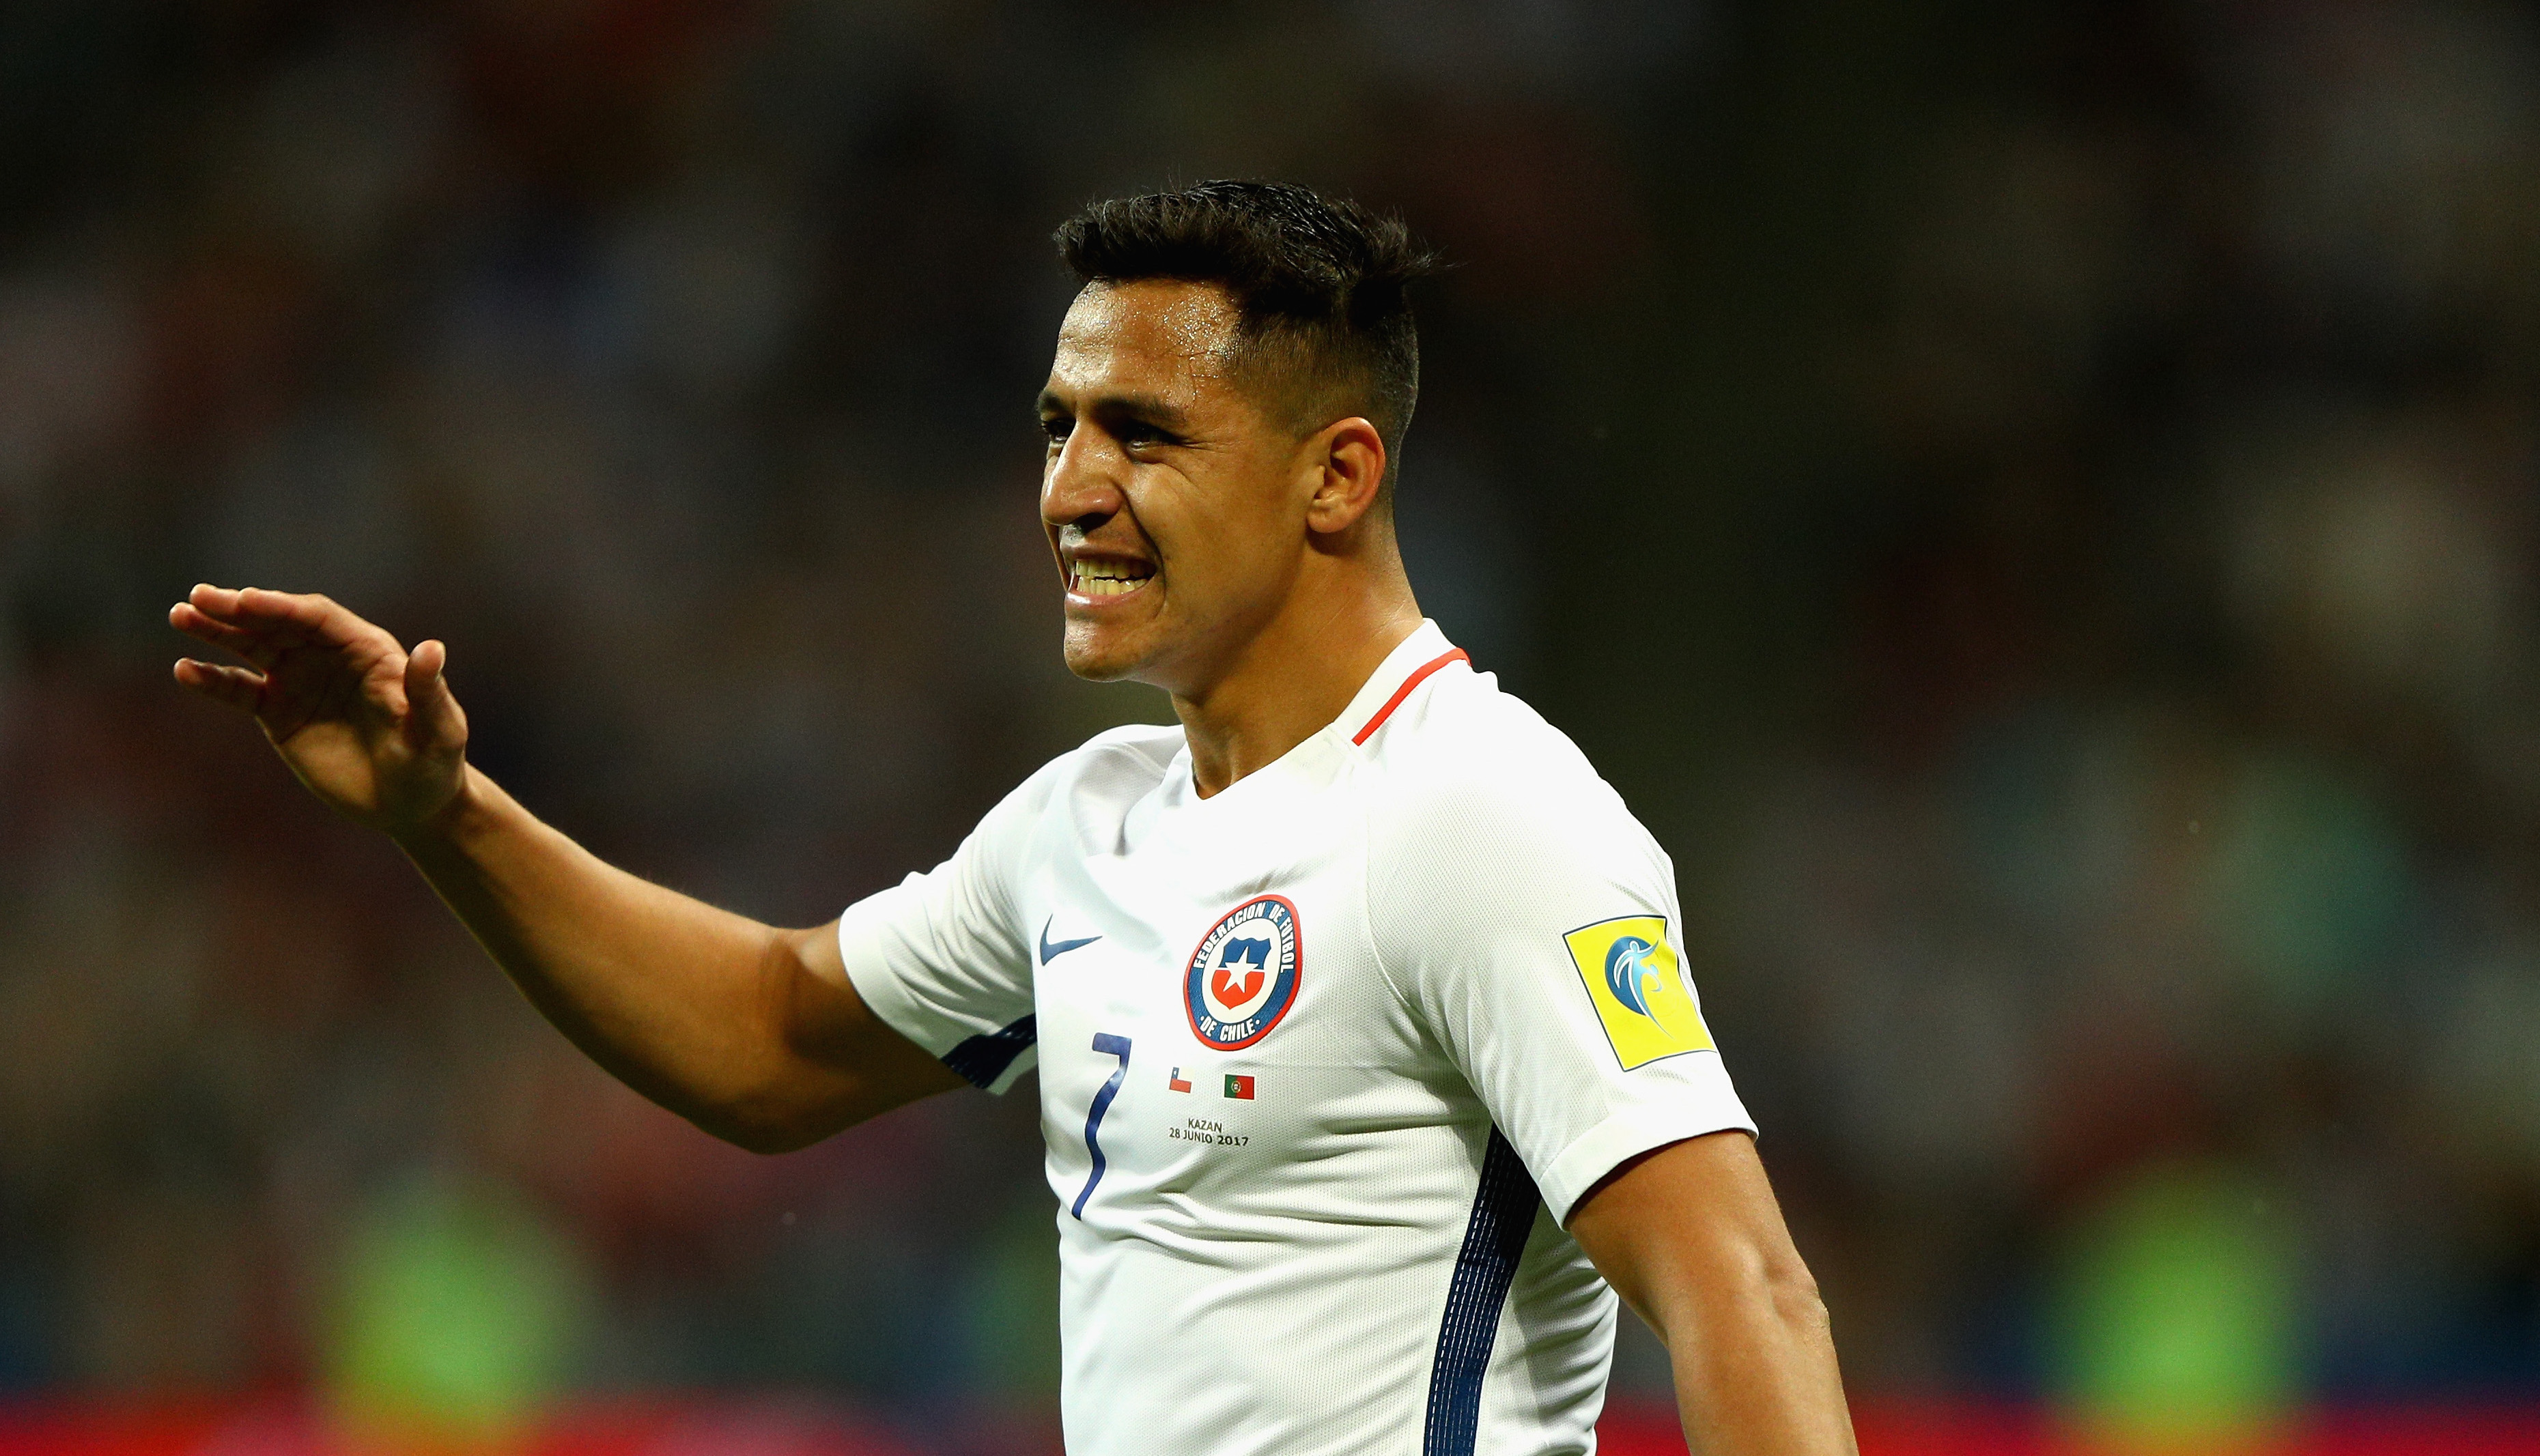 Alexis Sánchez Wants to Play in This South American Country Before Retiring